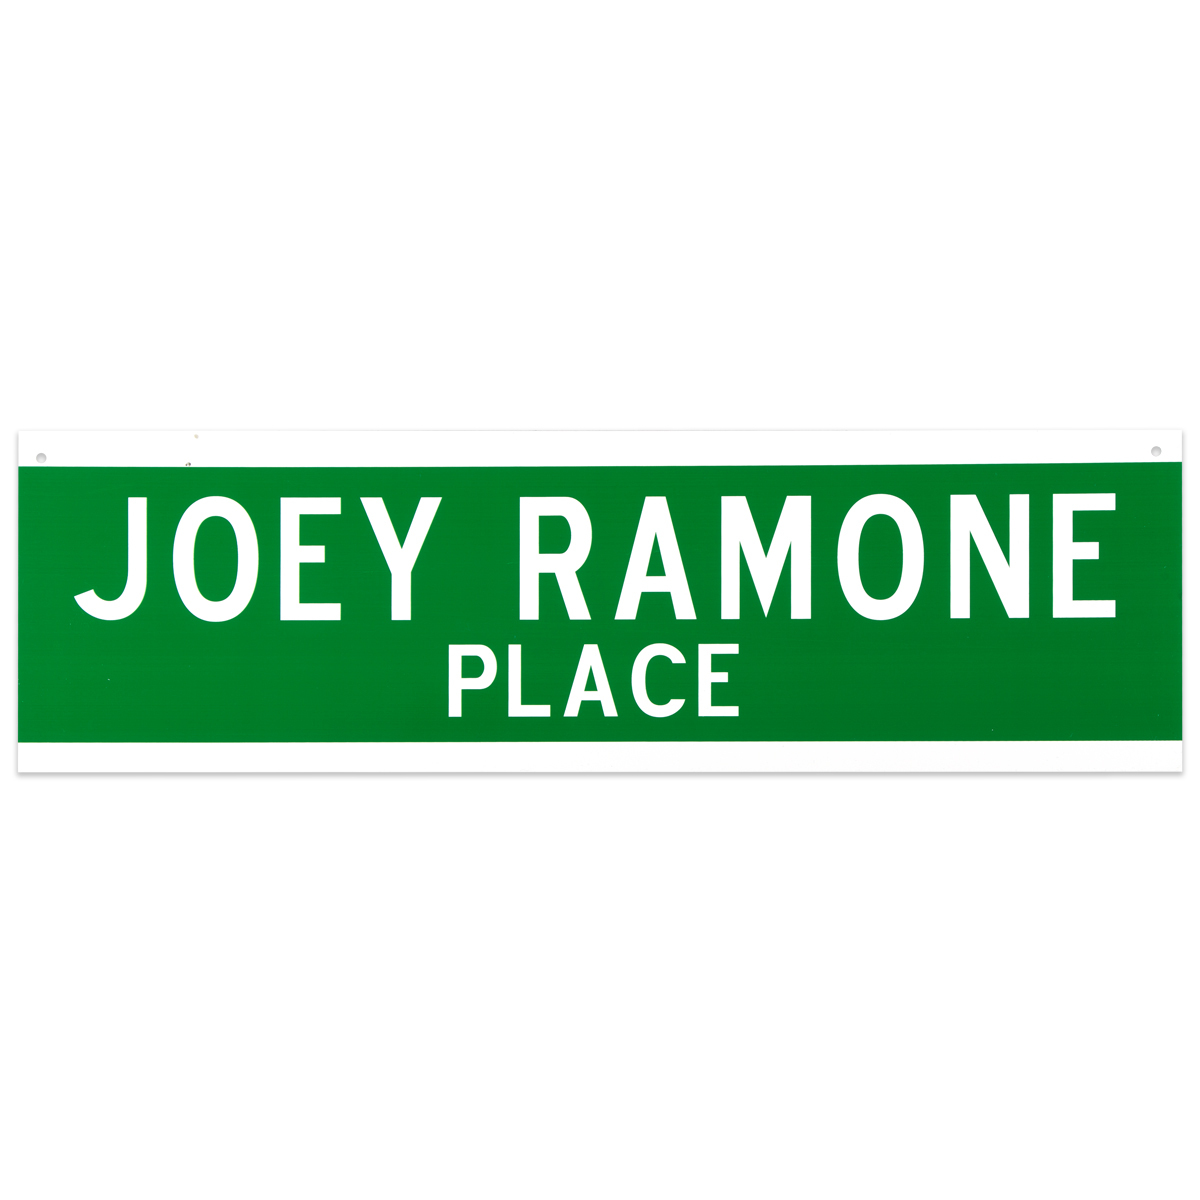 Joey Ramone Place Street Sign